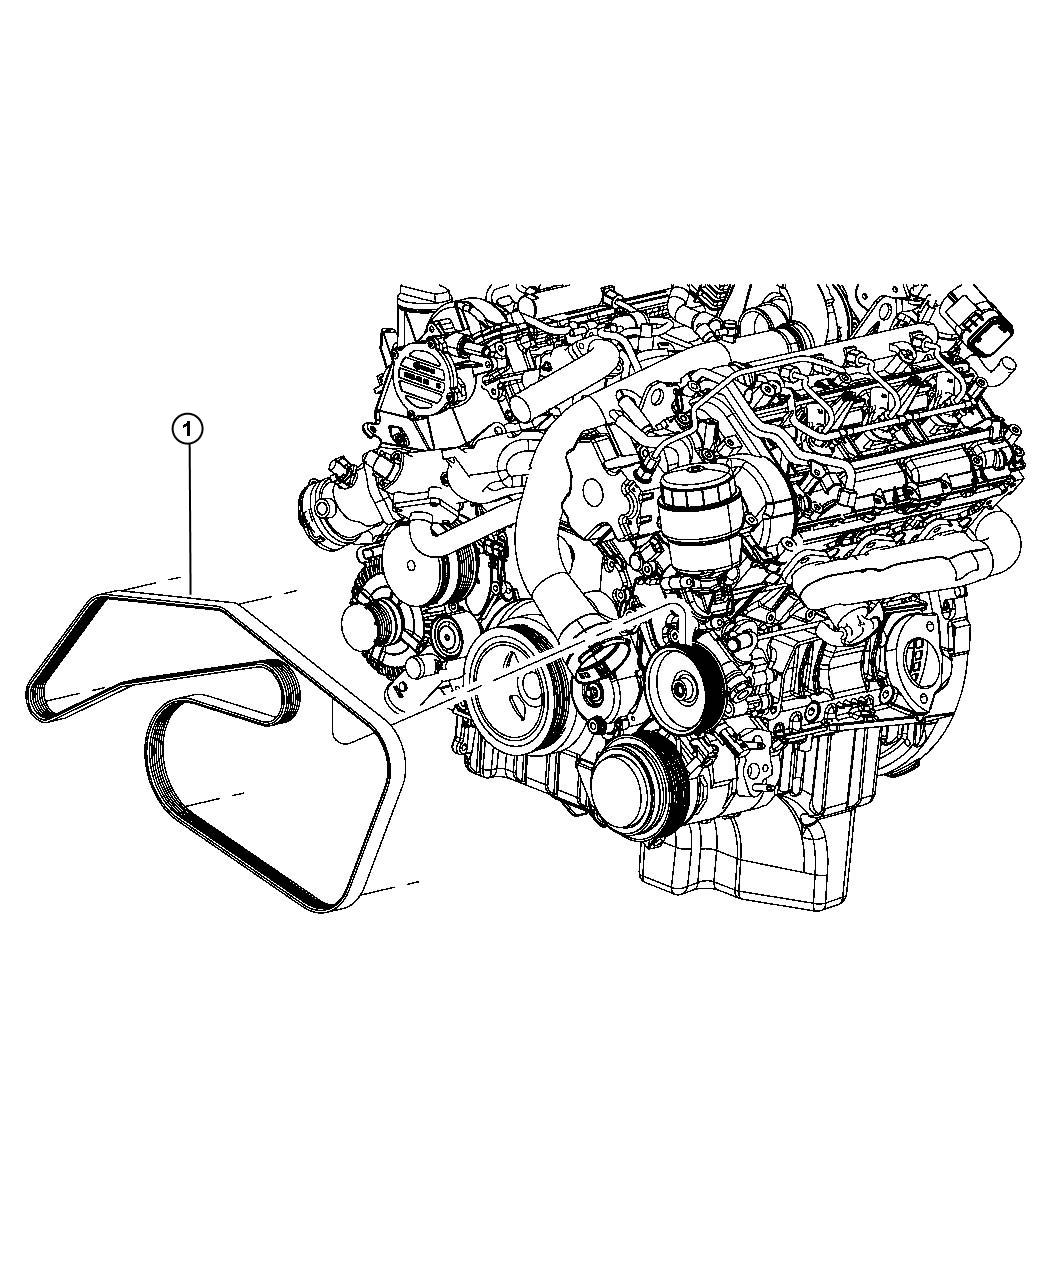 ShowAssembly additionally 2014 Honda Accord Timing Belts Or Chain as well ShowAssembly in addition Index also ShowAssembly. on who makes the best serpentine belts